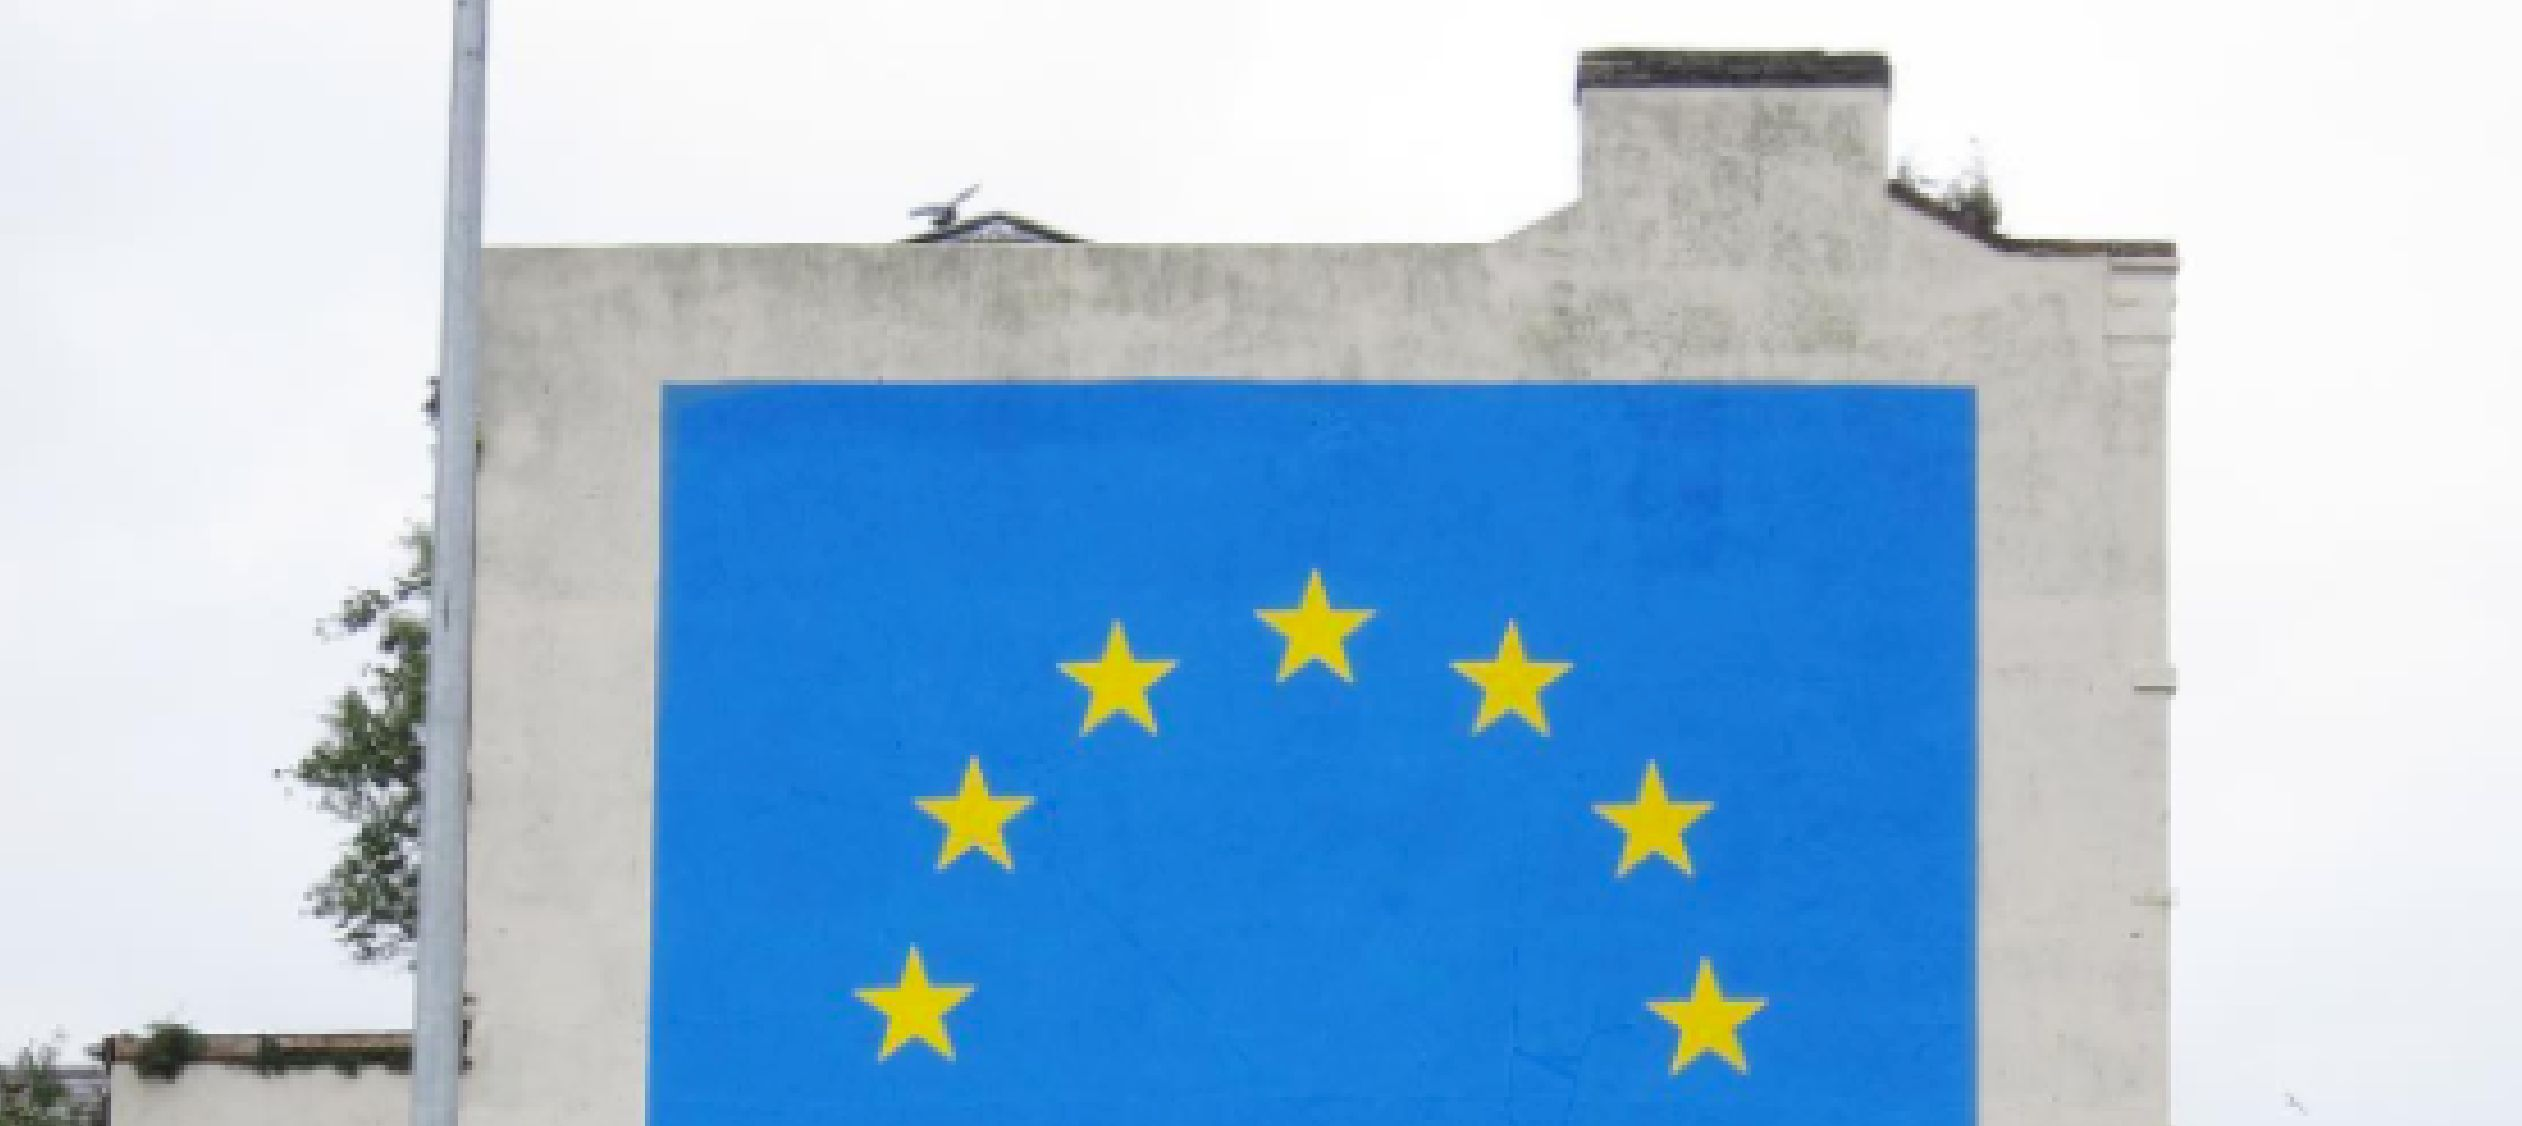 People Aren't Impressed With Banksy's Brexit-Themed